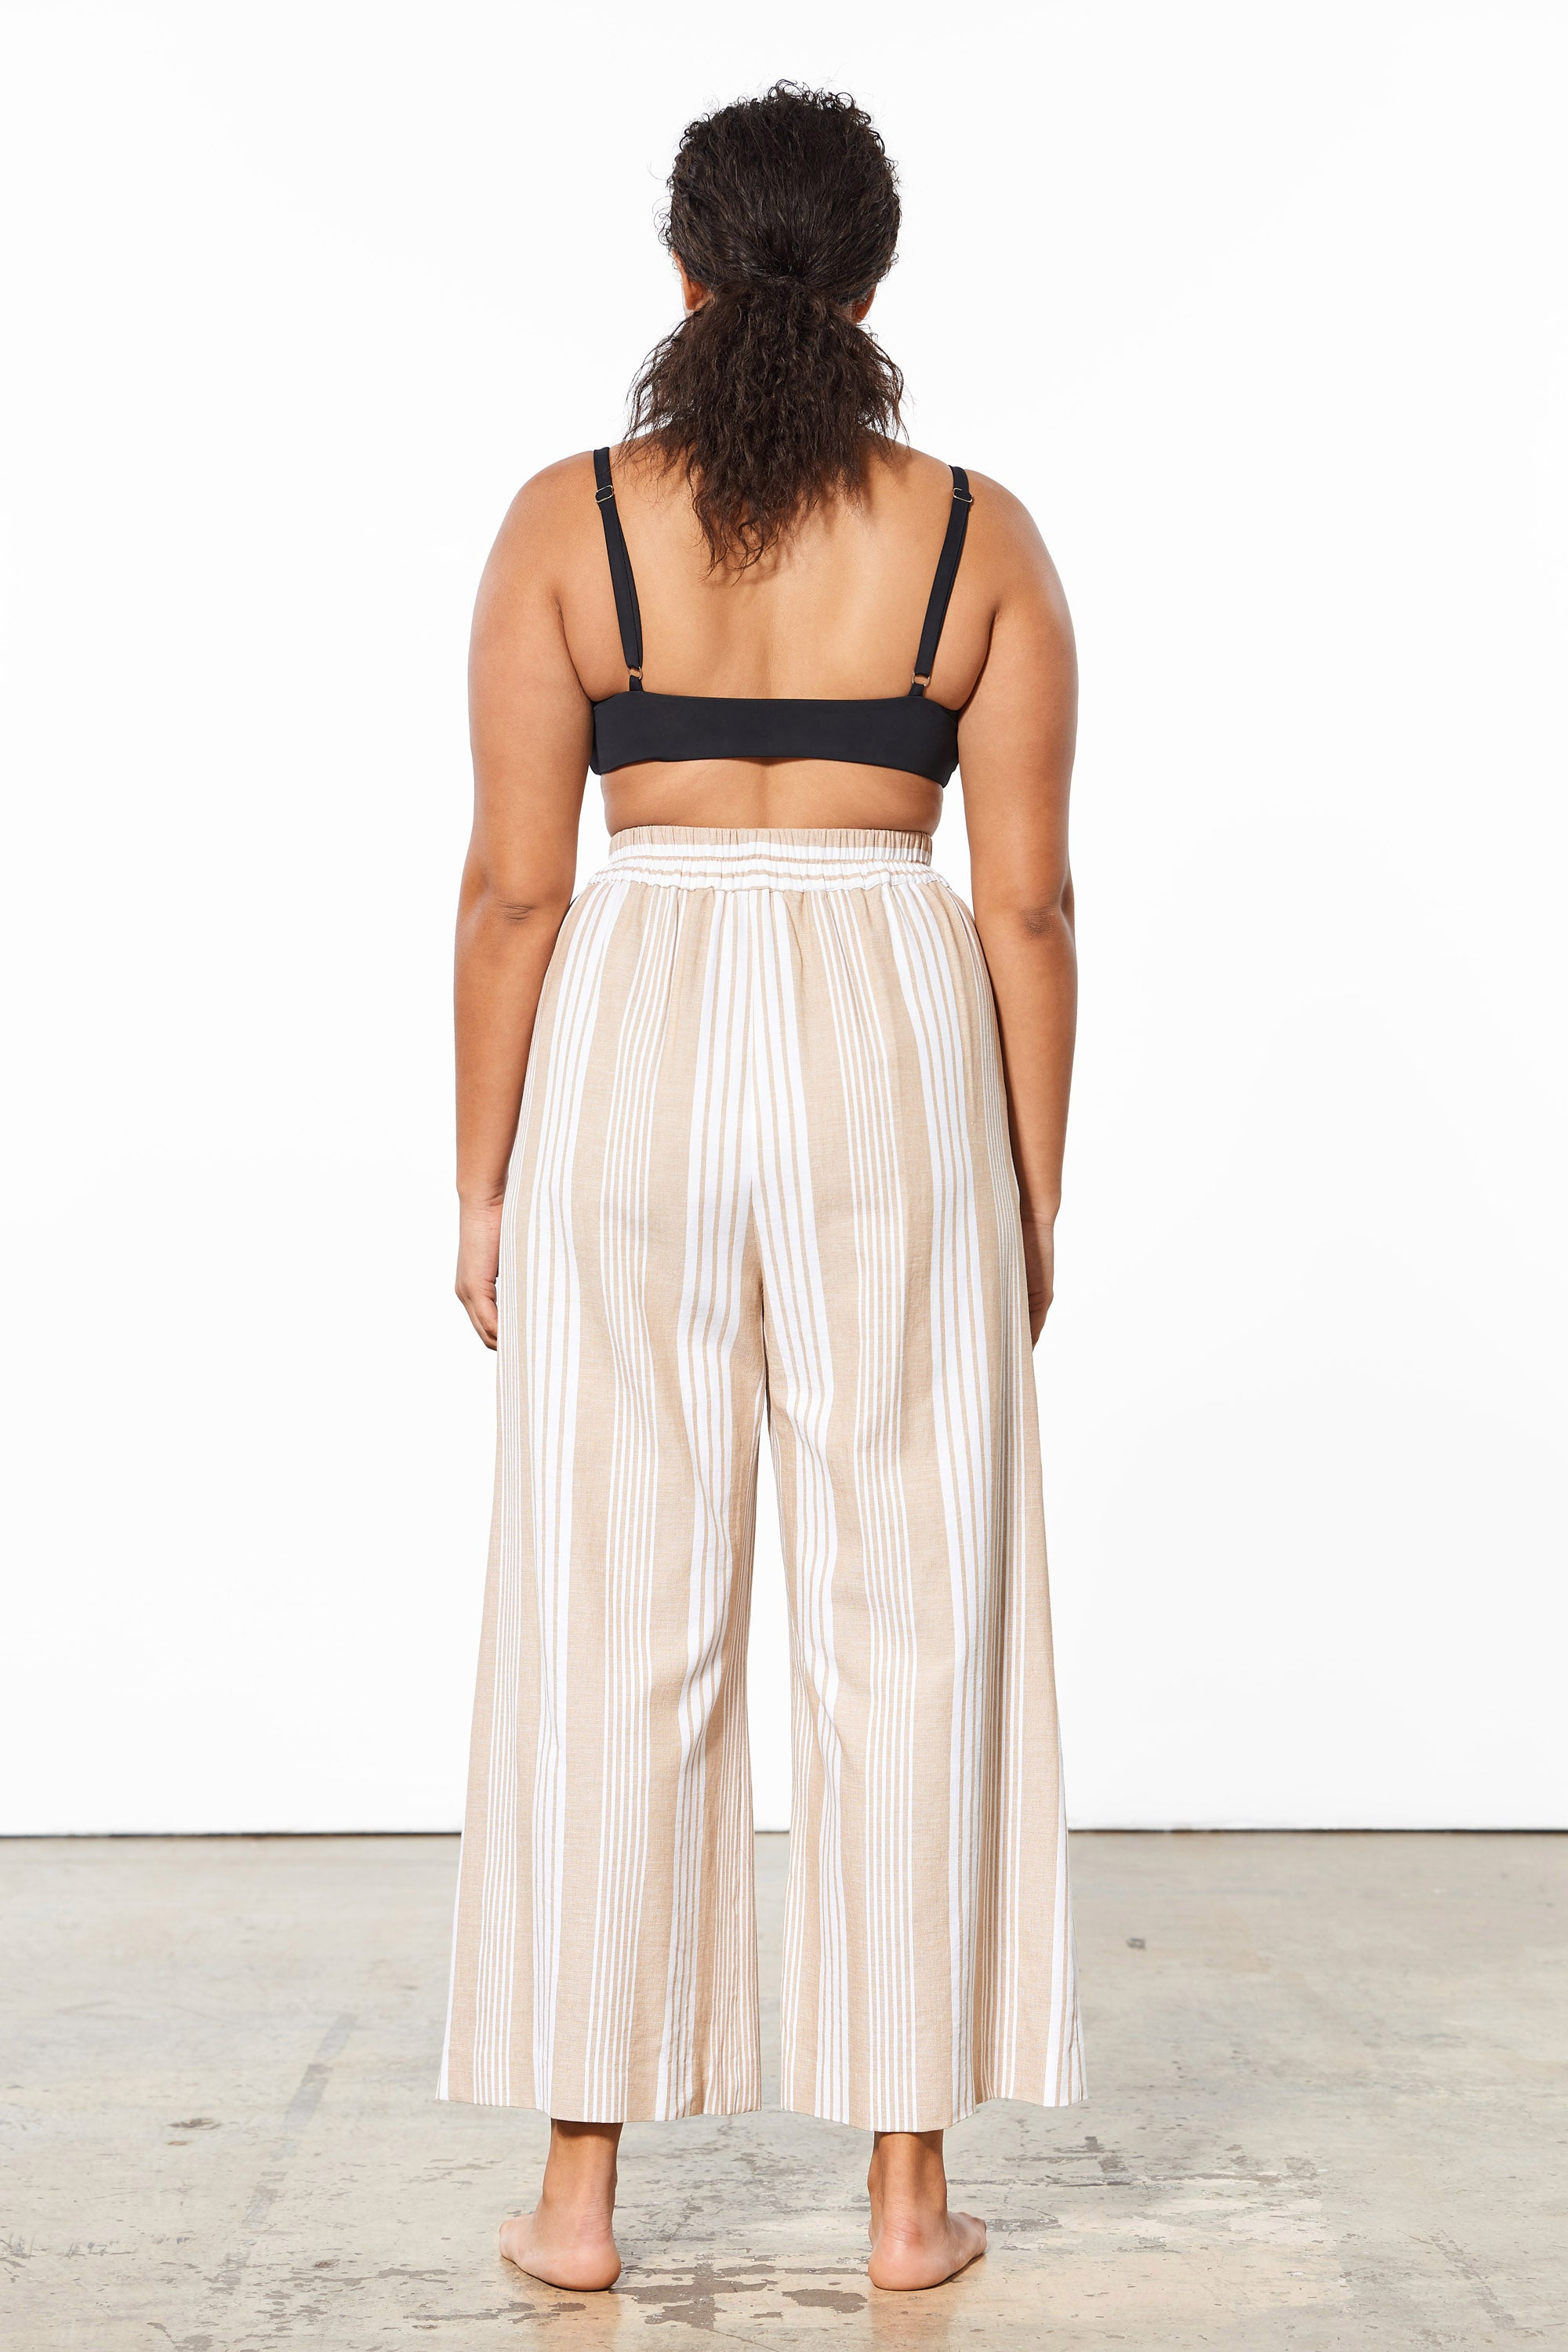 Mara Hoffman Extended White Sand Paloma Cover Up Pant in TENCEL Lyocell and organic cotton (back)